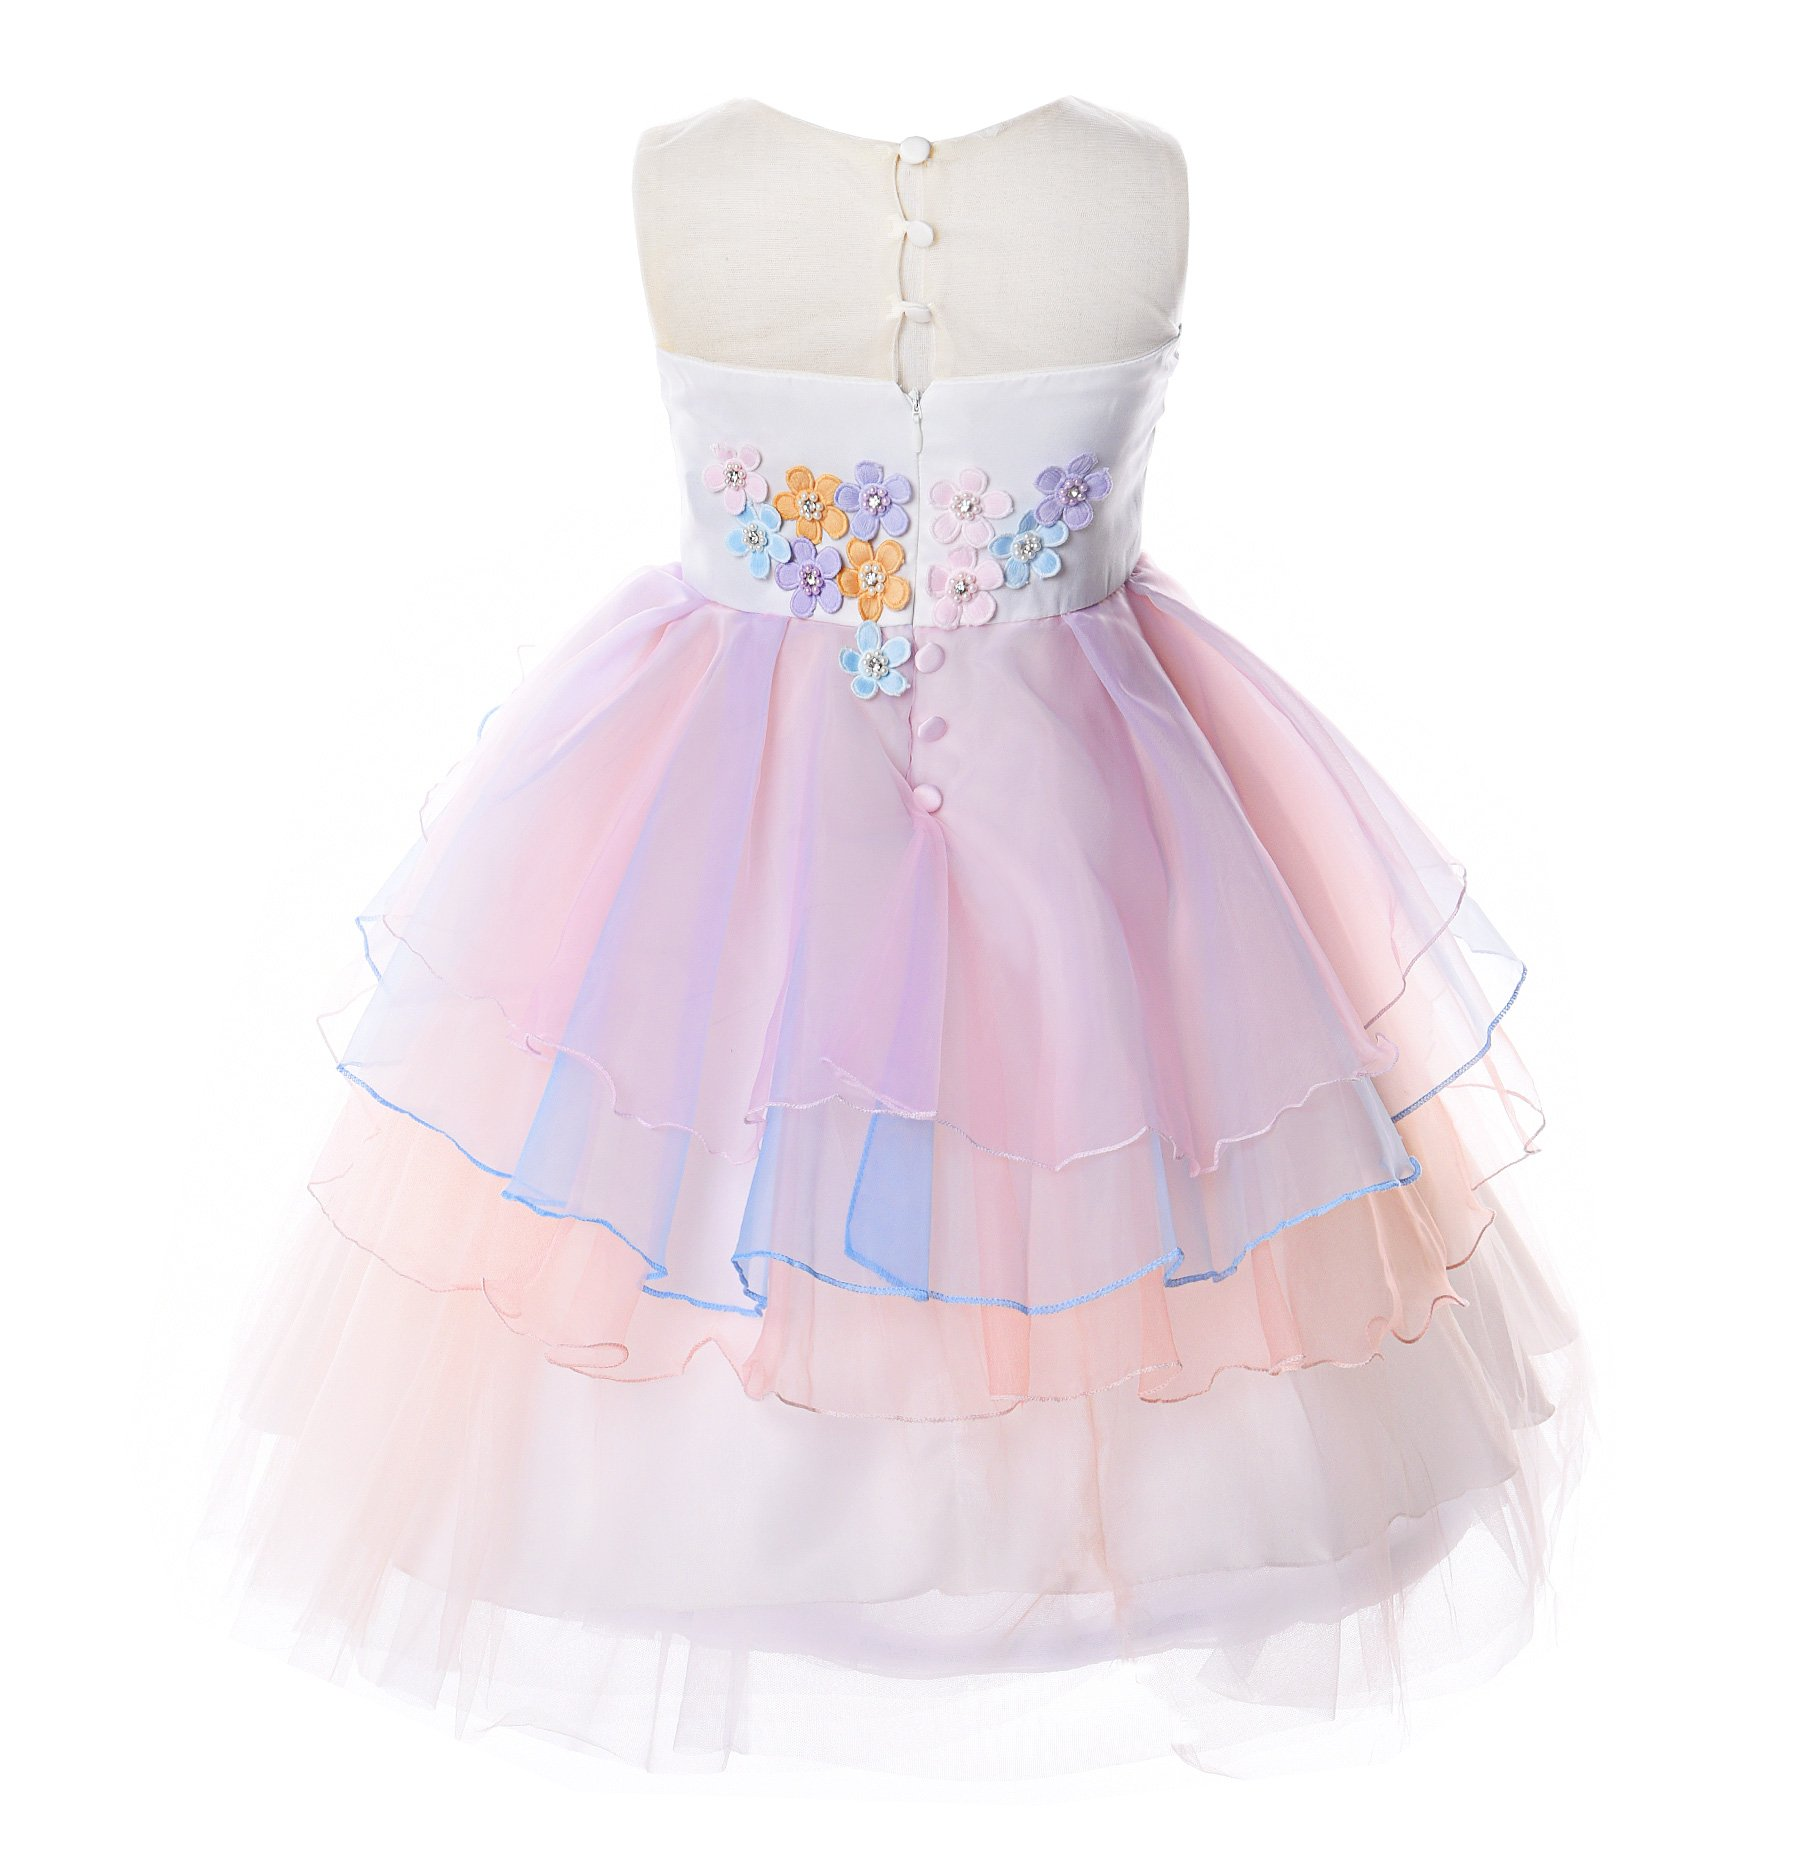 JerrisApparel Flower Girls Unicorn Costume Pageant Princess Party Dress (8-9 Years, Orange) by JerrisApparel (Image #2)